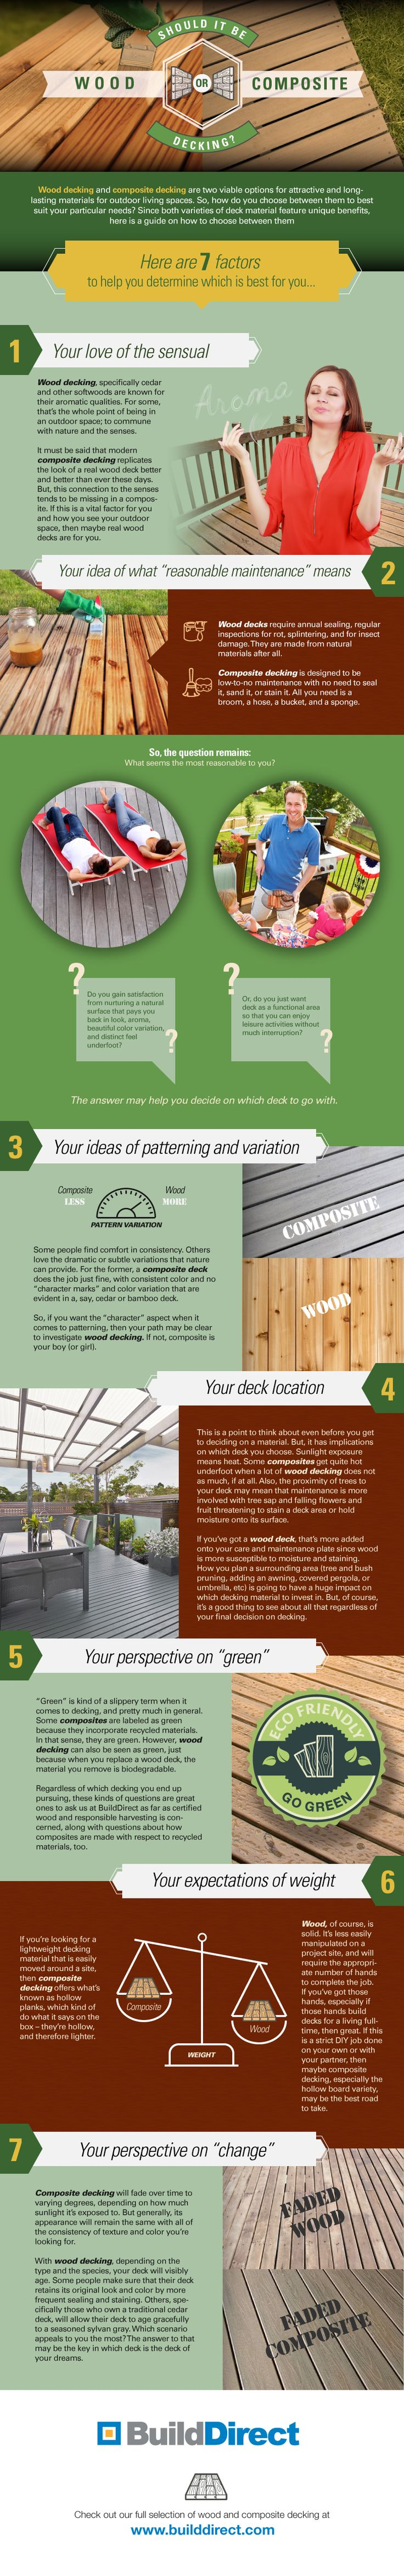 Builddirect_Wood Decking Or Composite Decks: An Infographic https://www.builddirect.com/blog/wood-decking-or-composite-decks-an-infographic/